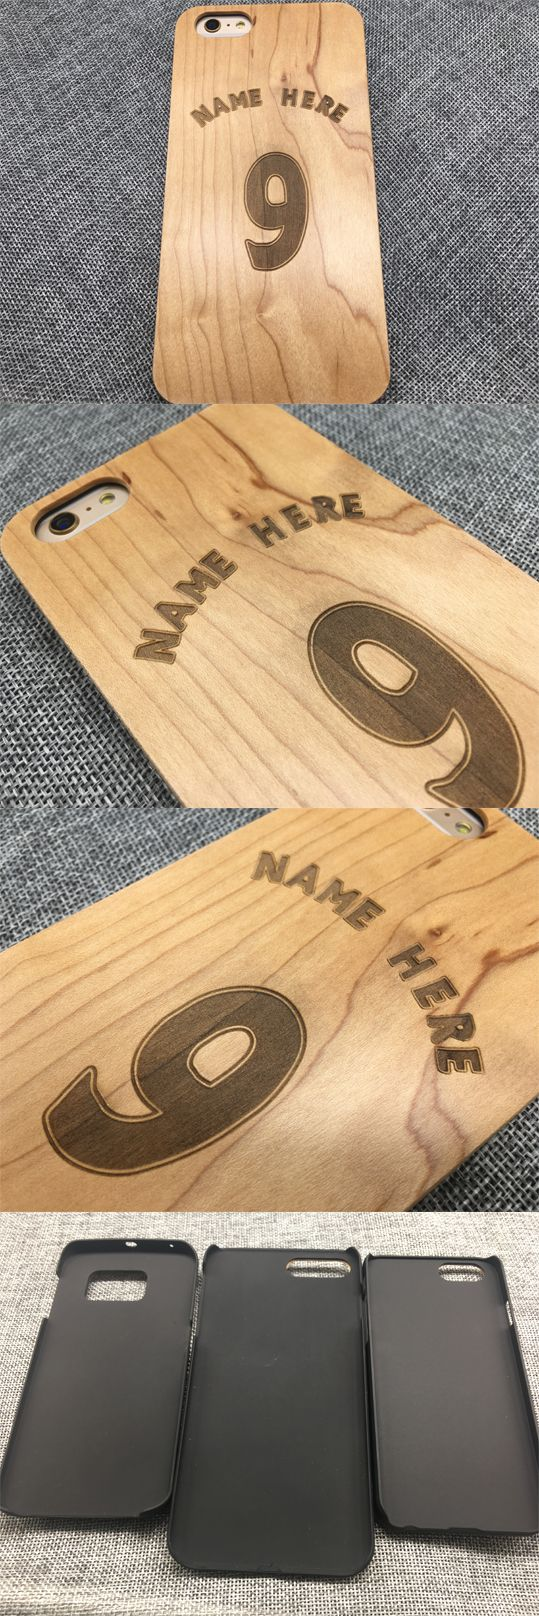 www.jiacase.com Personalized engraving jerseys's name and number on wood phone case for Iphone 7/7plus,6/6S/6Splus,5/5s/5se,Samsung Galaxy S7/S6,Galaxy Edge S7,Galaxy Edge S7  #Phone Case #Personalized-Made #personalized #NLF #NHL #NBA #name #and #number #Monogram #jiacase